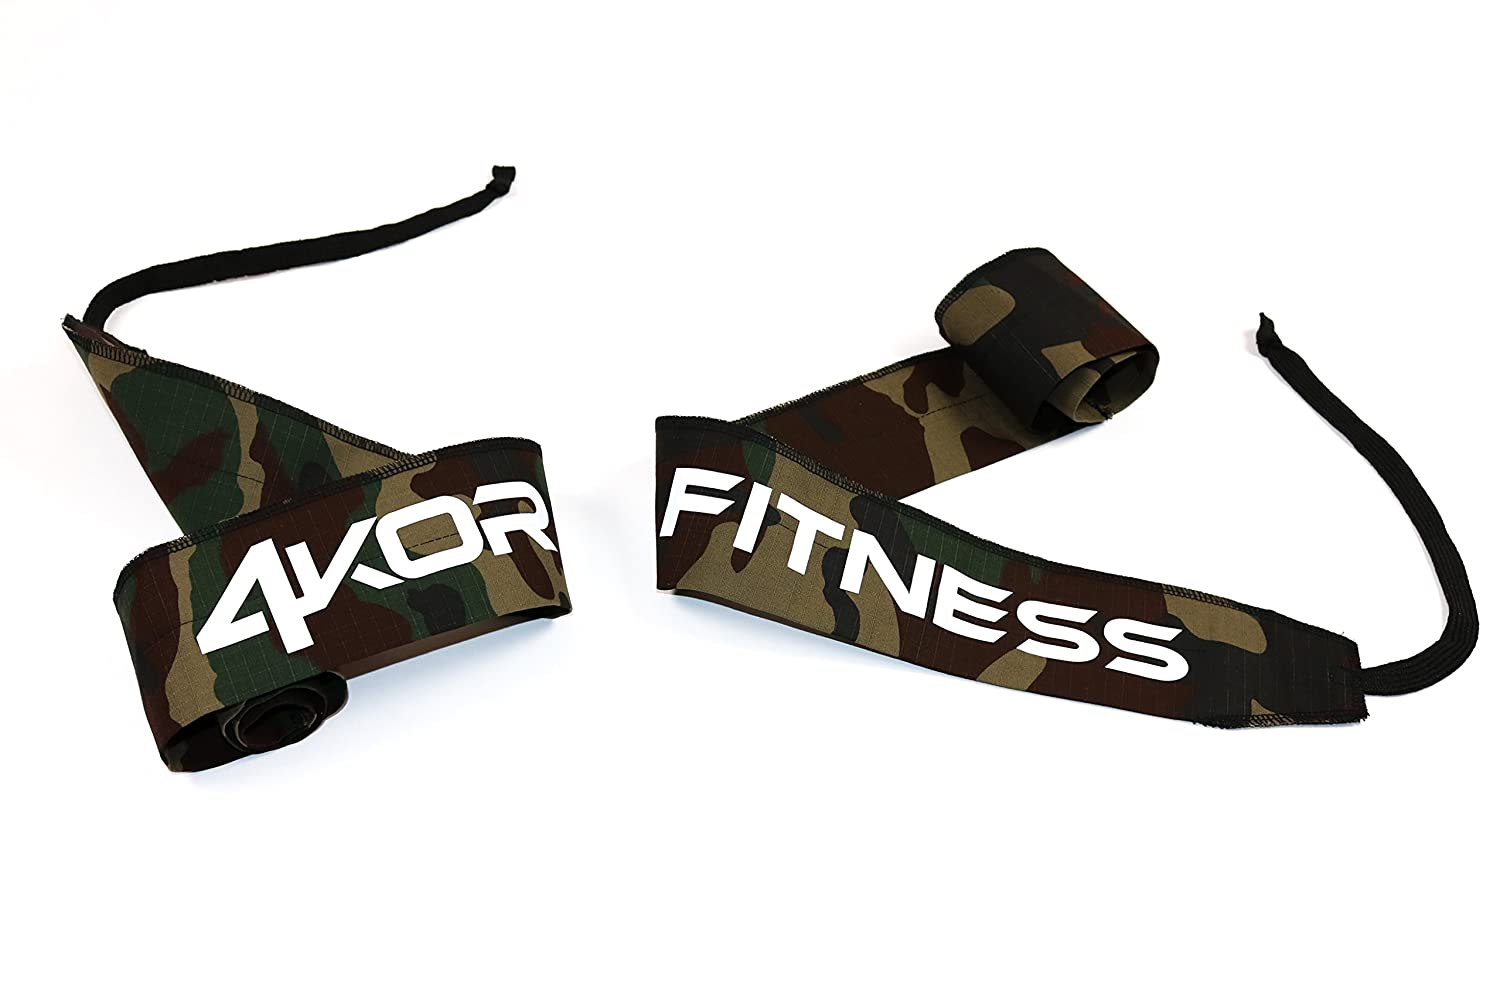 Olympic Weightlifting Wrist Supports for Weight Training Strength Wraps for Cross Training One Size Fits All 4 KOR Fitness Wrist Wraps by 4KOR Fitness Bodybuilding Powerlifting